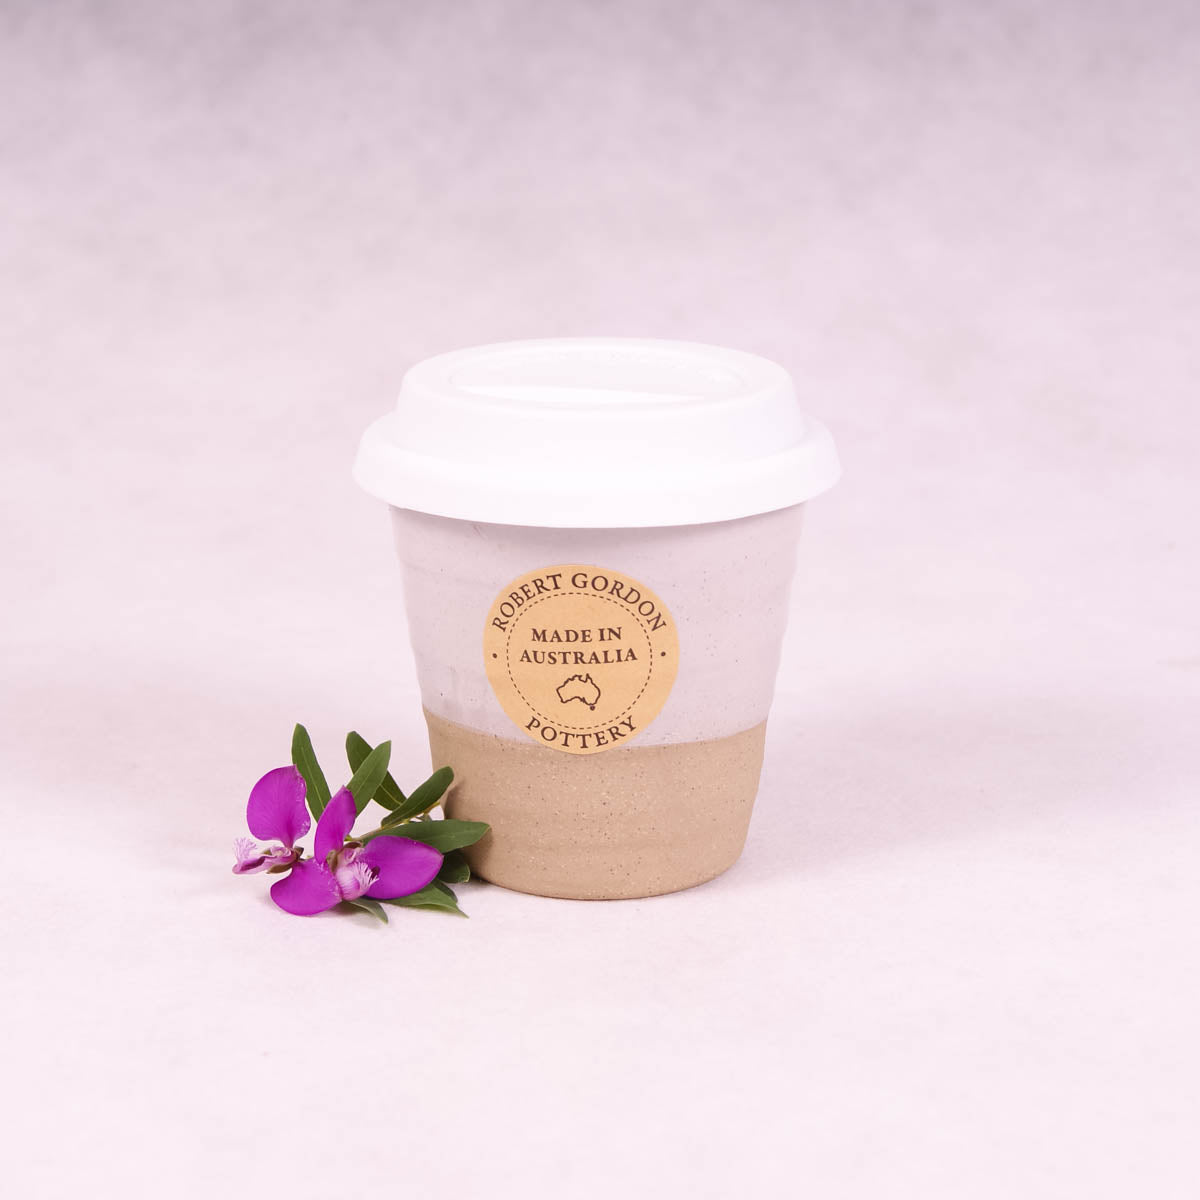 Winter Pastels Ceramic Carousel Cup Small - White - Travel Cup - Throw Some Seeds - Australian gardening gifts and eco products online!